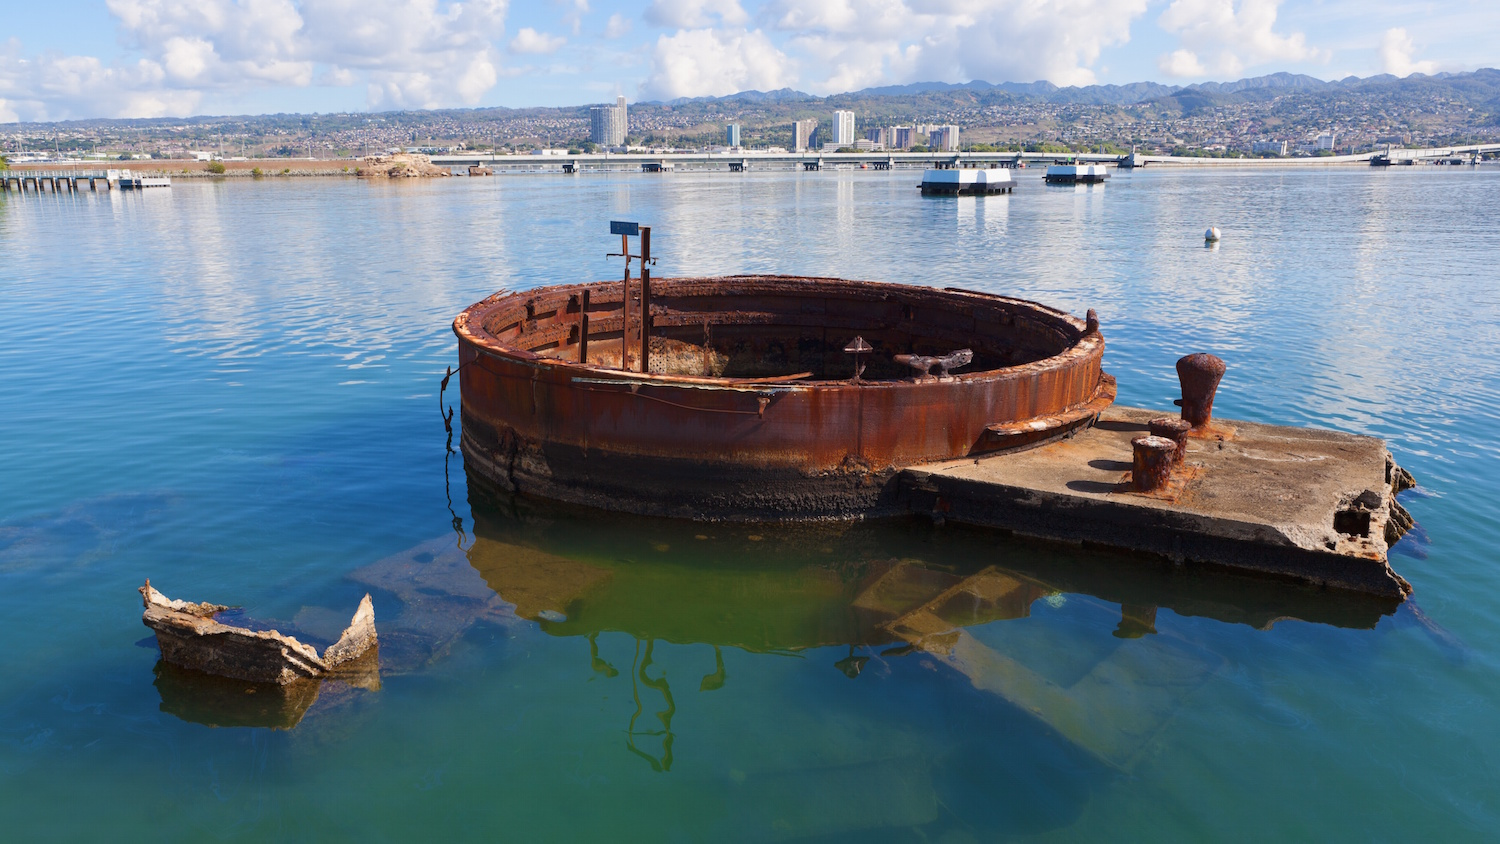 a look at the uss arizona memorial A closer look at pearl harbor - into the arizona more about pearl harbor - into the arizona today, the remains of the uss arizona serve as a memorial to the american people, and are a stark.